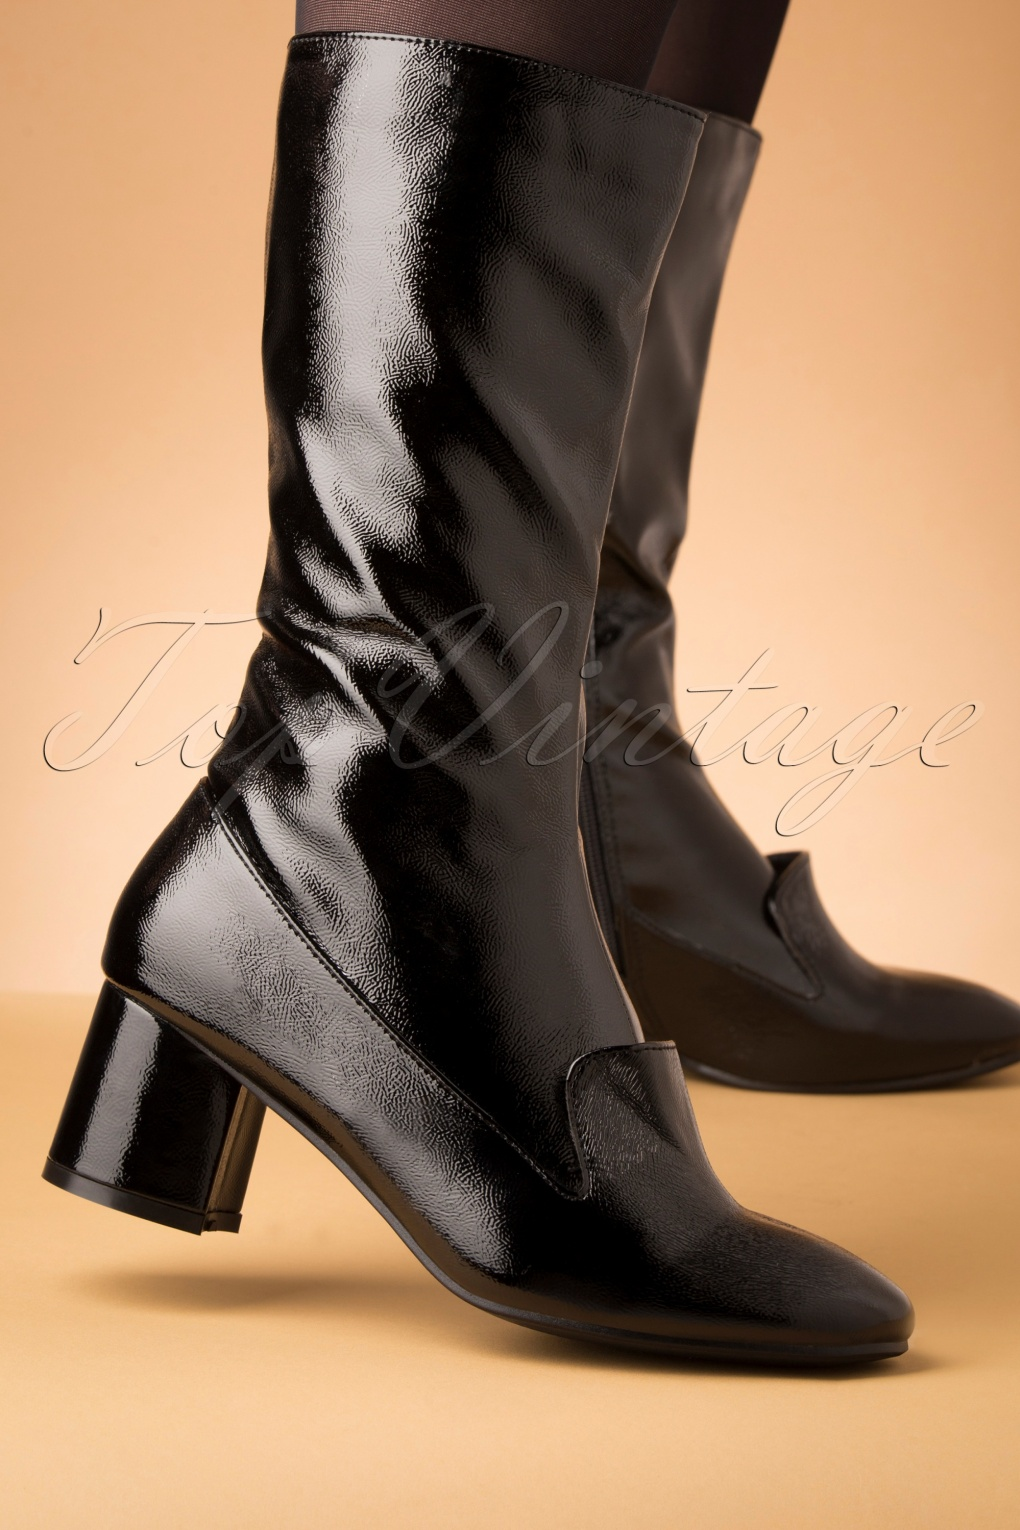 1960s Style Dresses, Clothing, Shoes UK 60s The Modernist Patent Boots in Black £73.47 AT vintagedancer.com